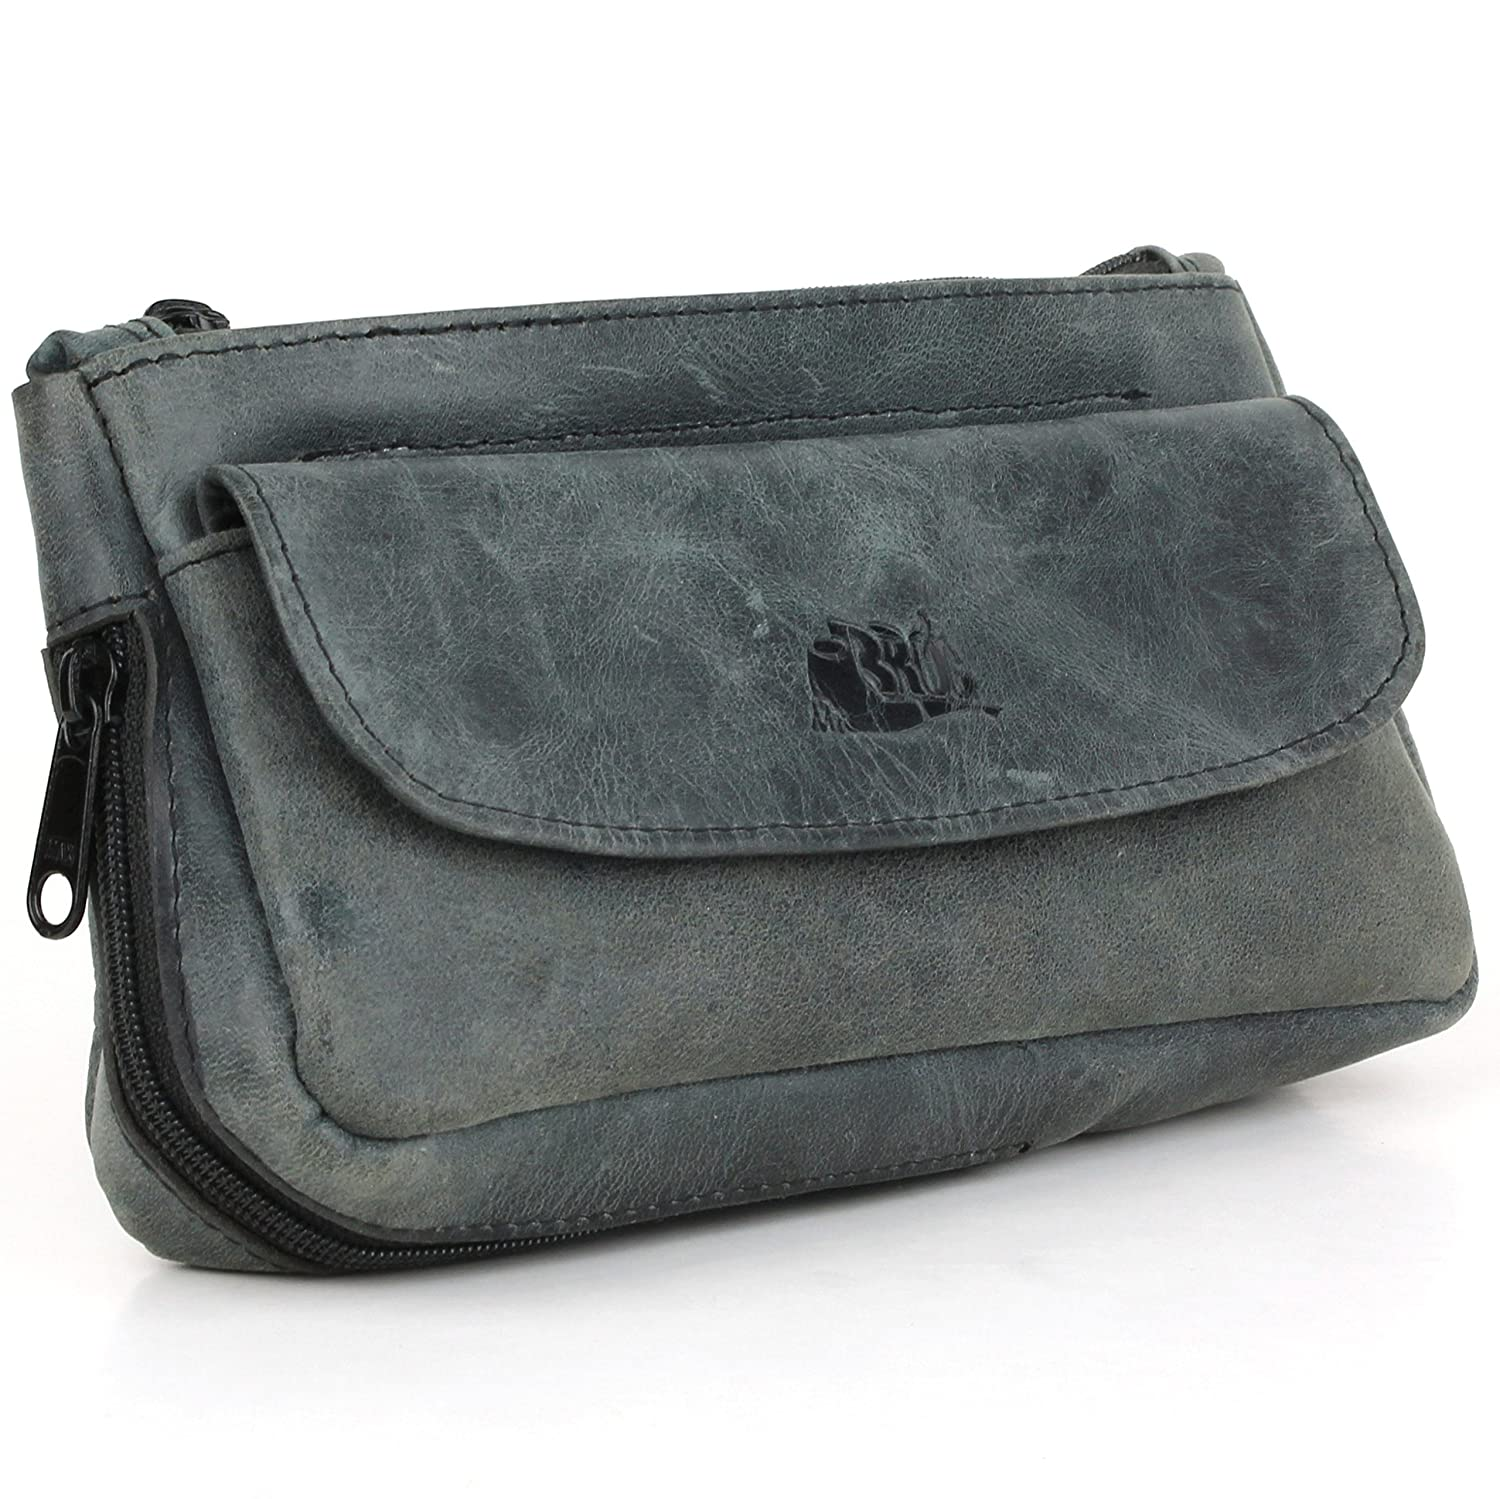 Tobacco Pipe Pouch - Diesel Leather - [Slate Black] Mr. Brog